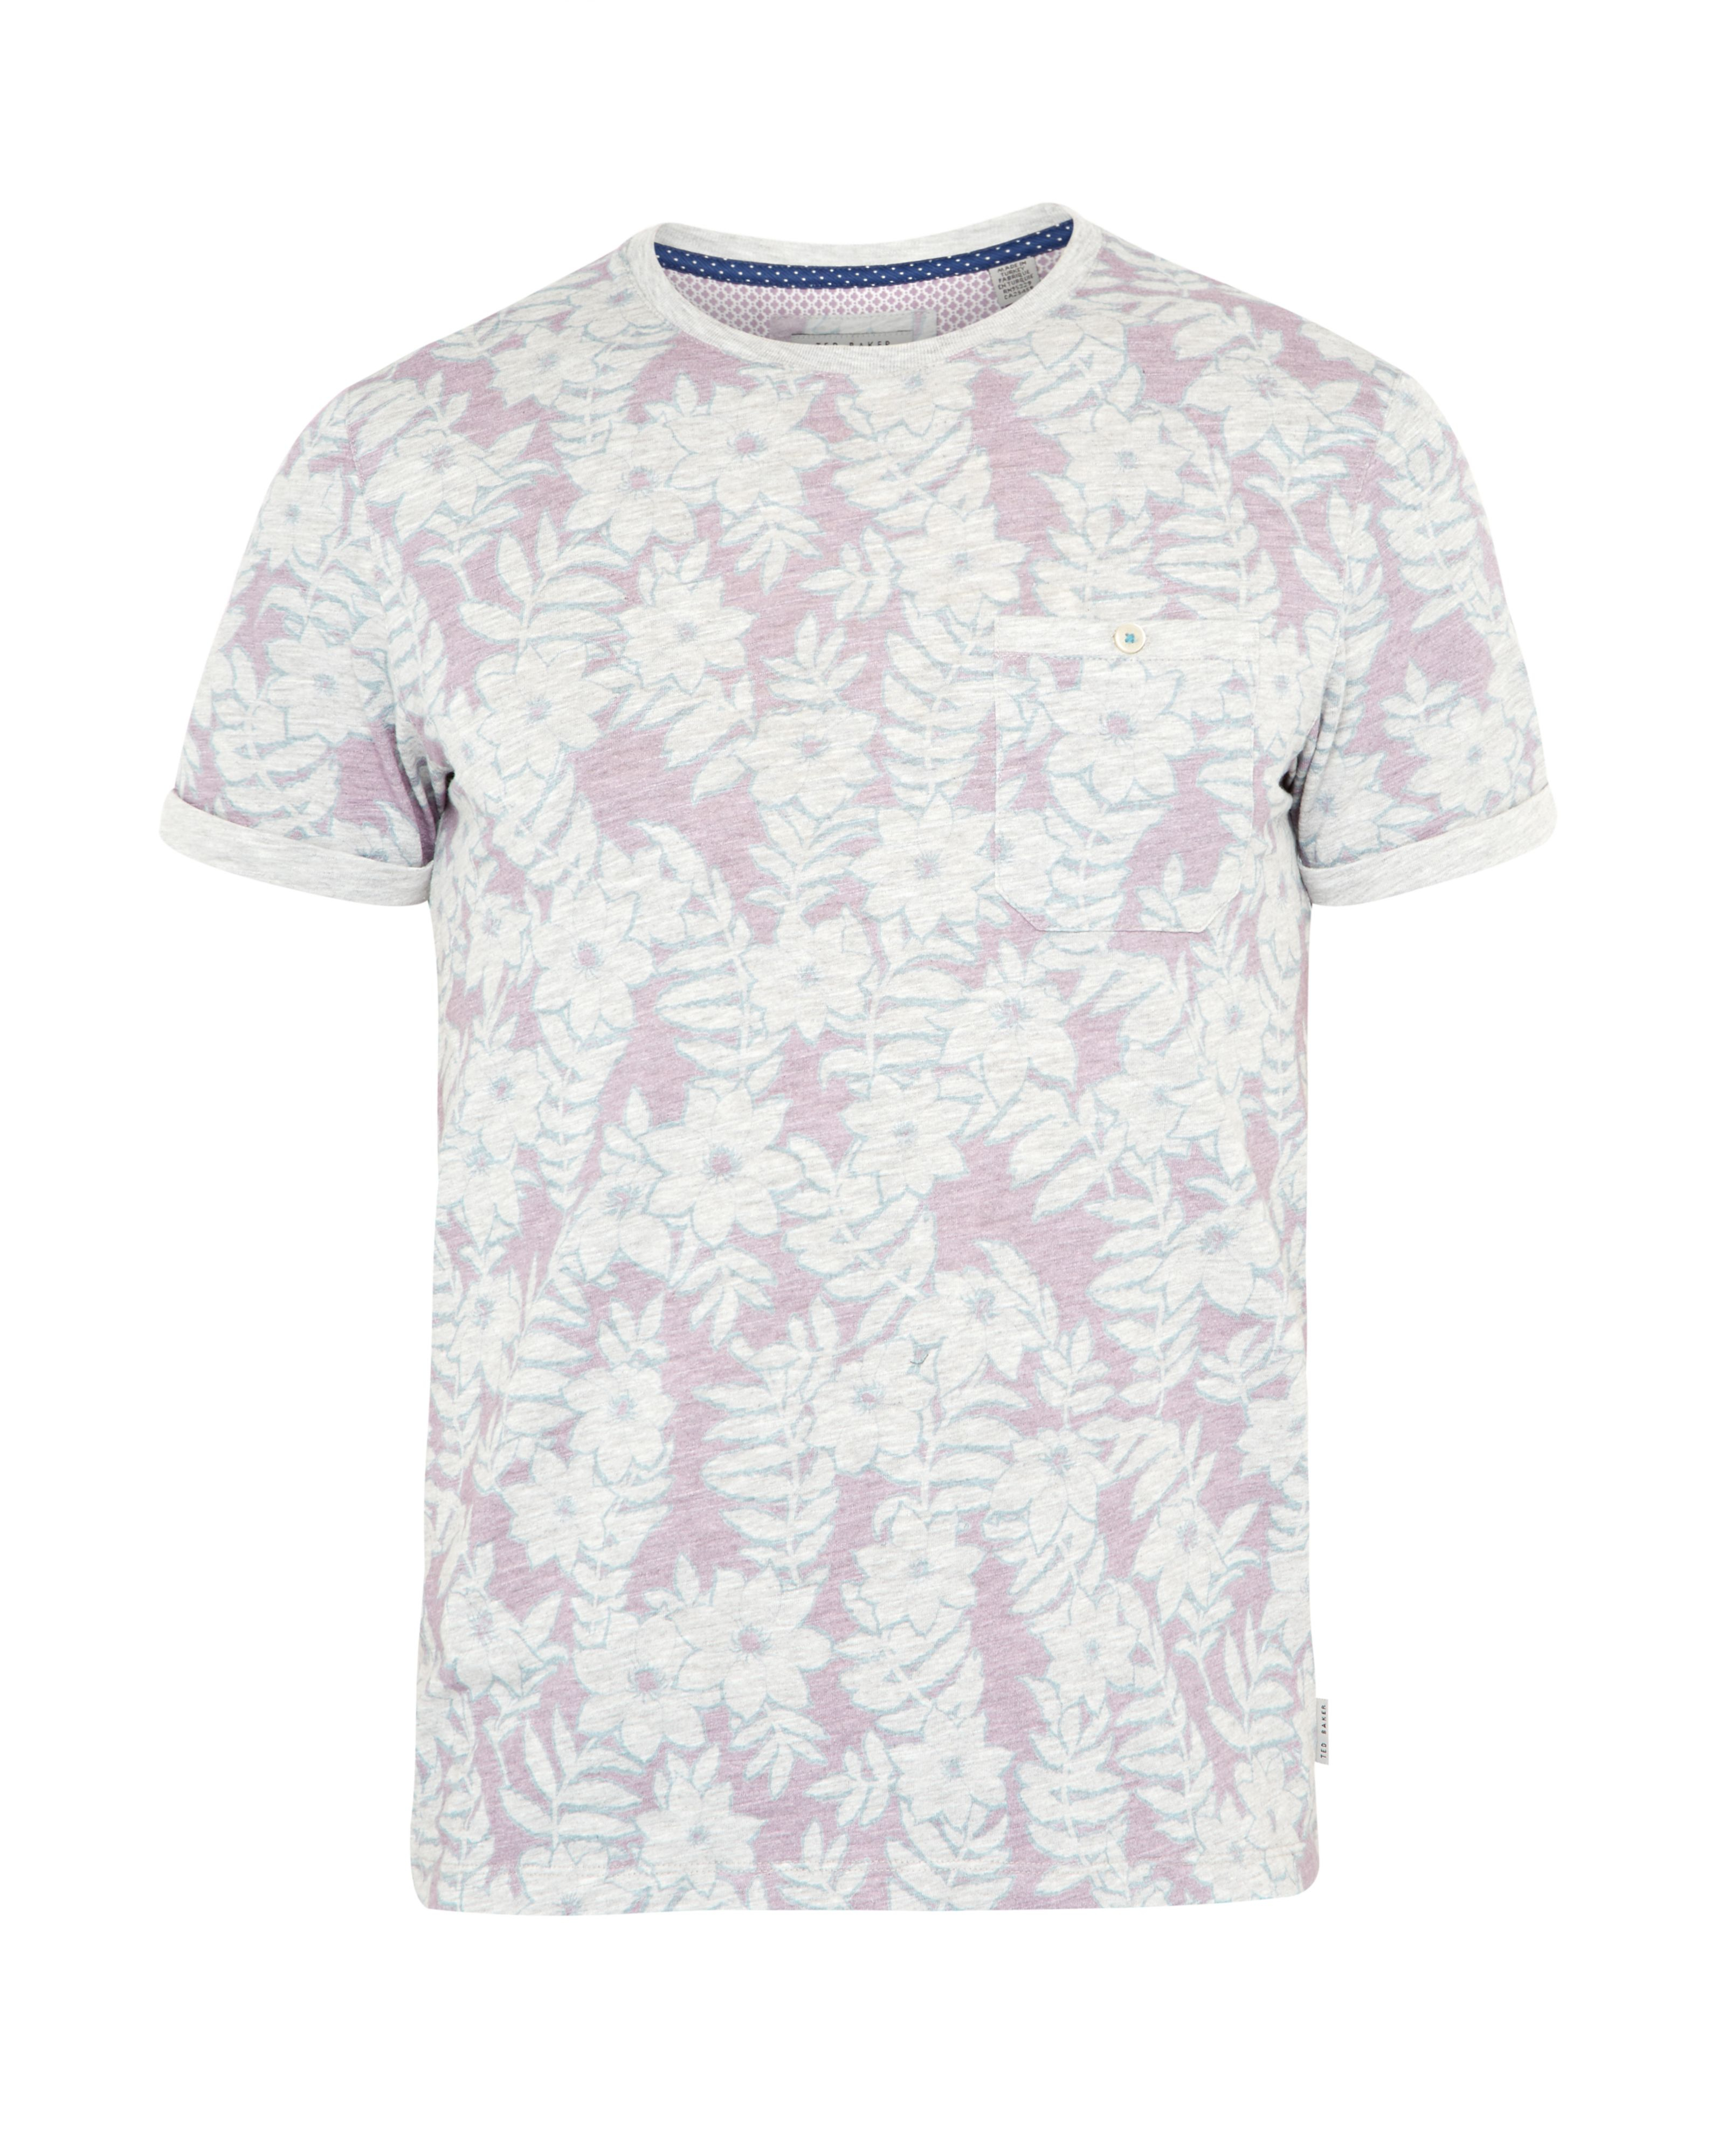 Ted baker rootz floral cotton t shirt in purple for men lyst for Ted baker floral print shirt